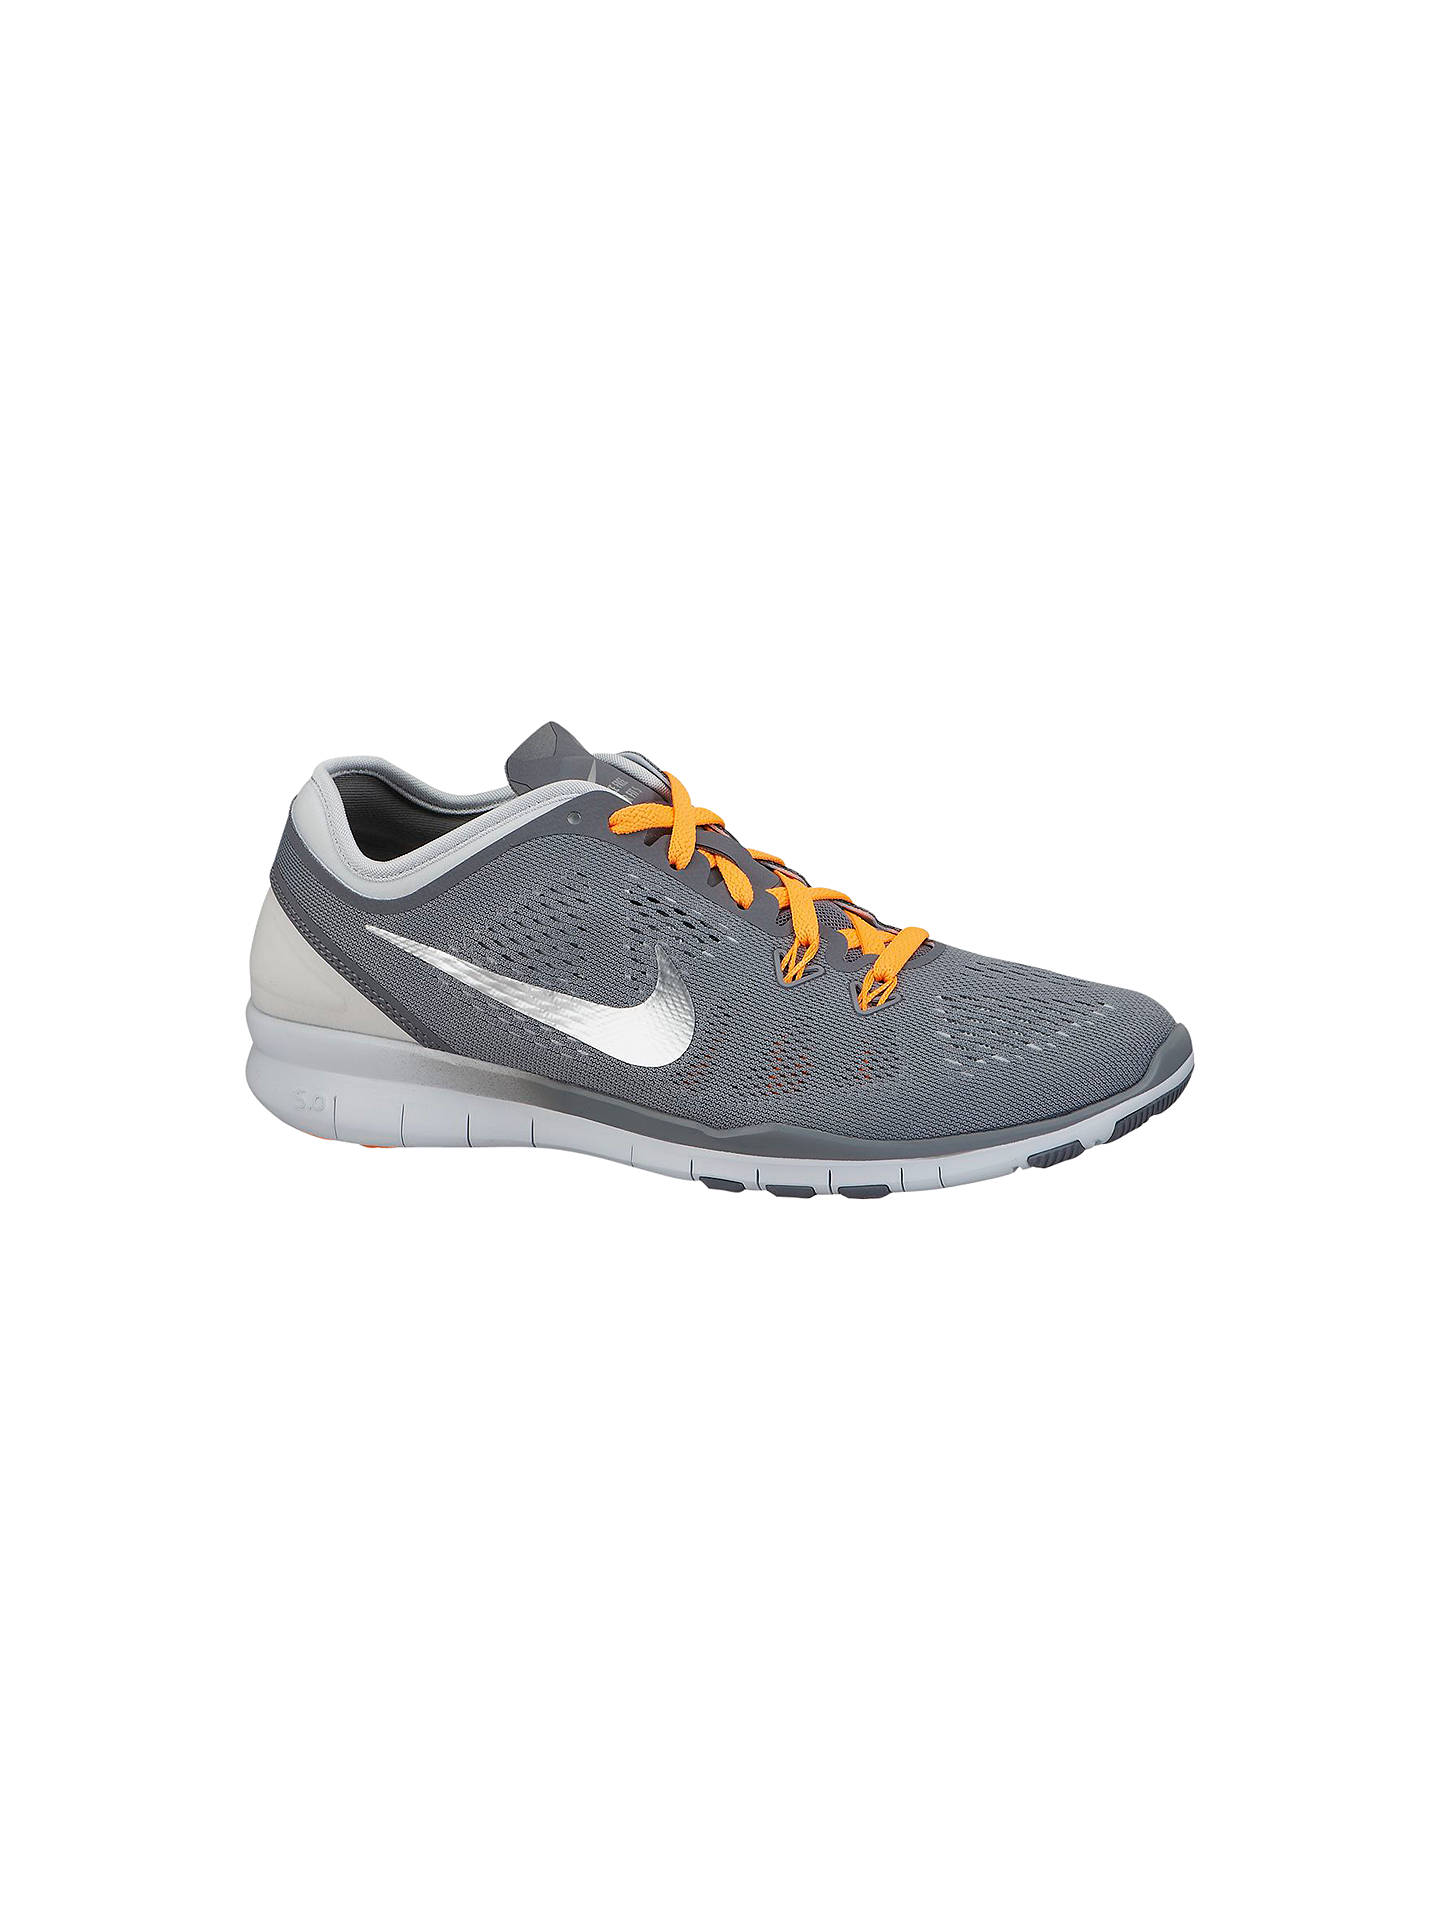 los angeles 395b1 9857a Buy Nike Free 5.0 Women s Running Shoes, Grey, 4 Online at johnlewis. ...